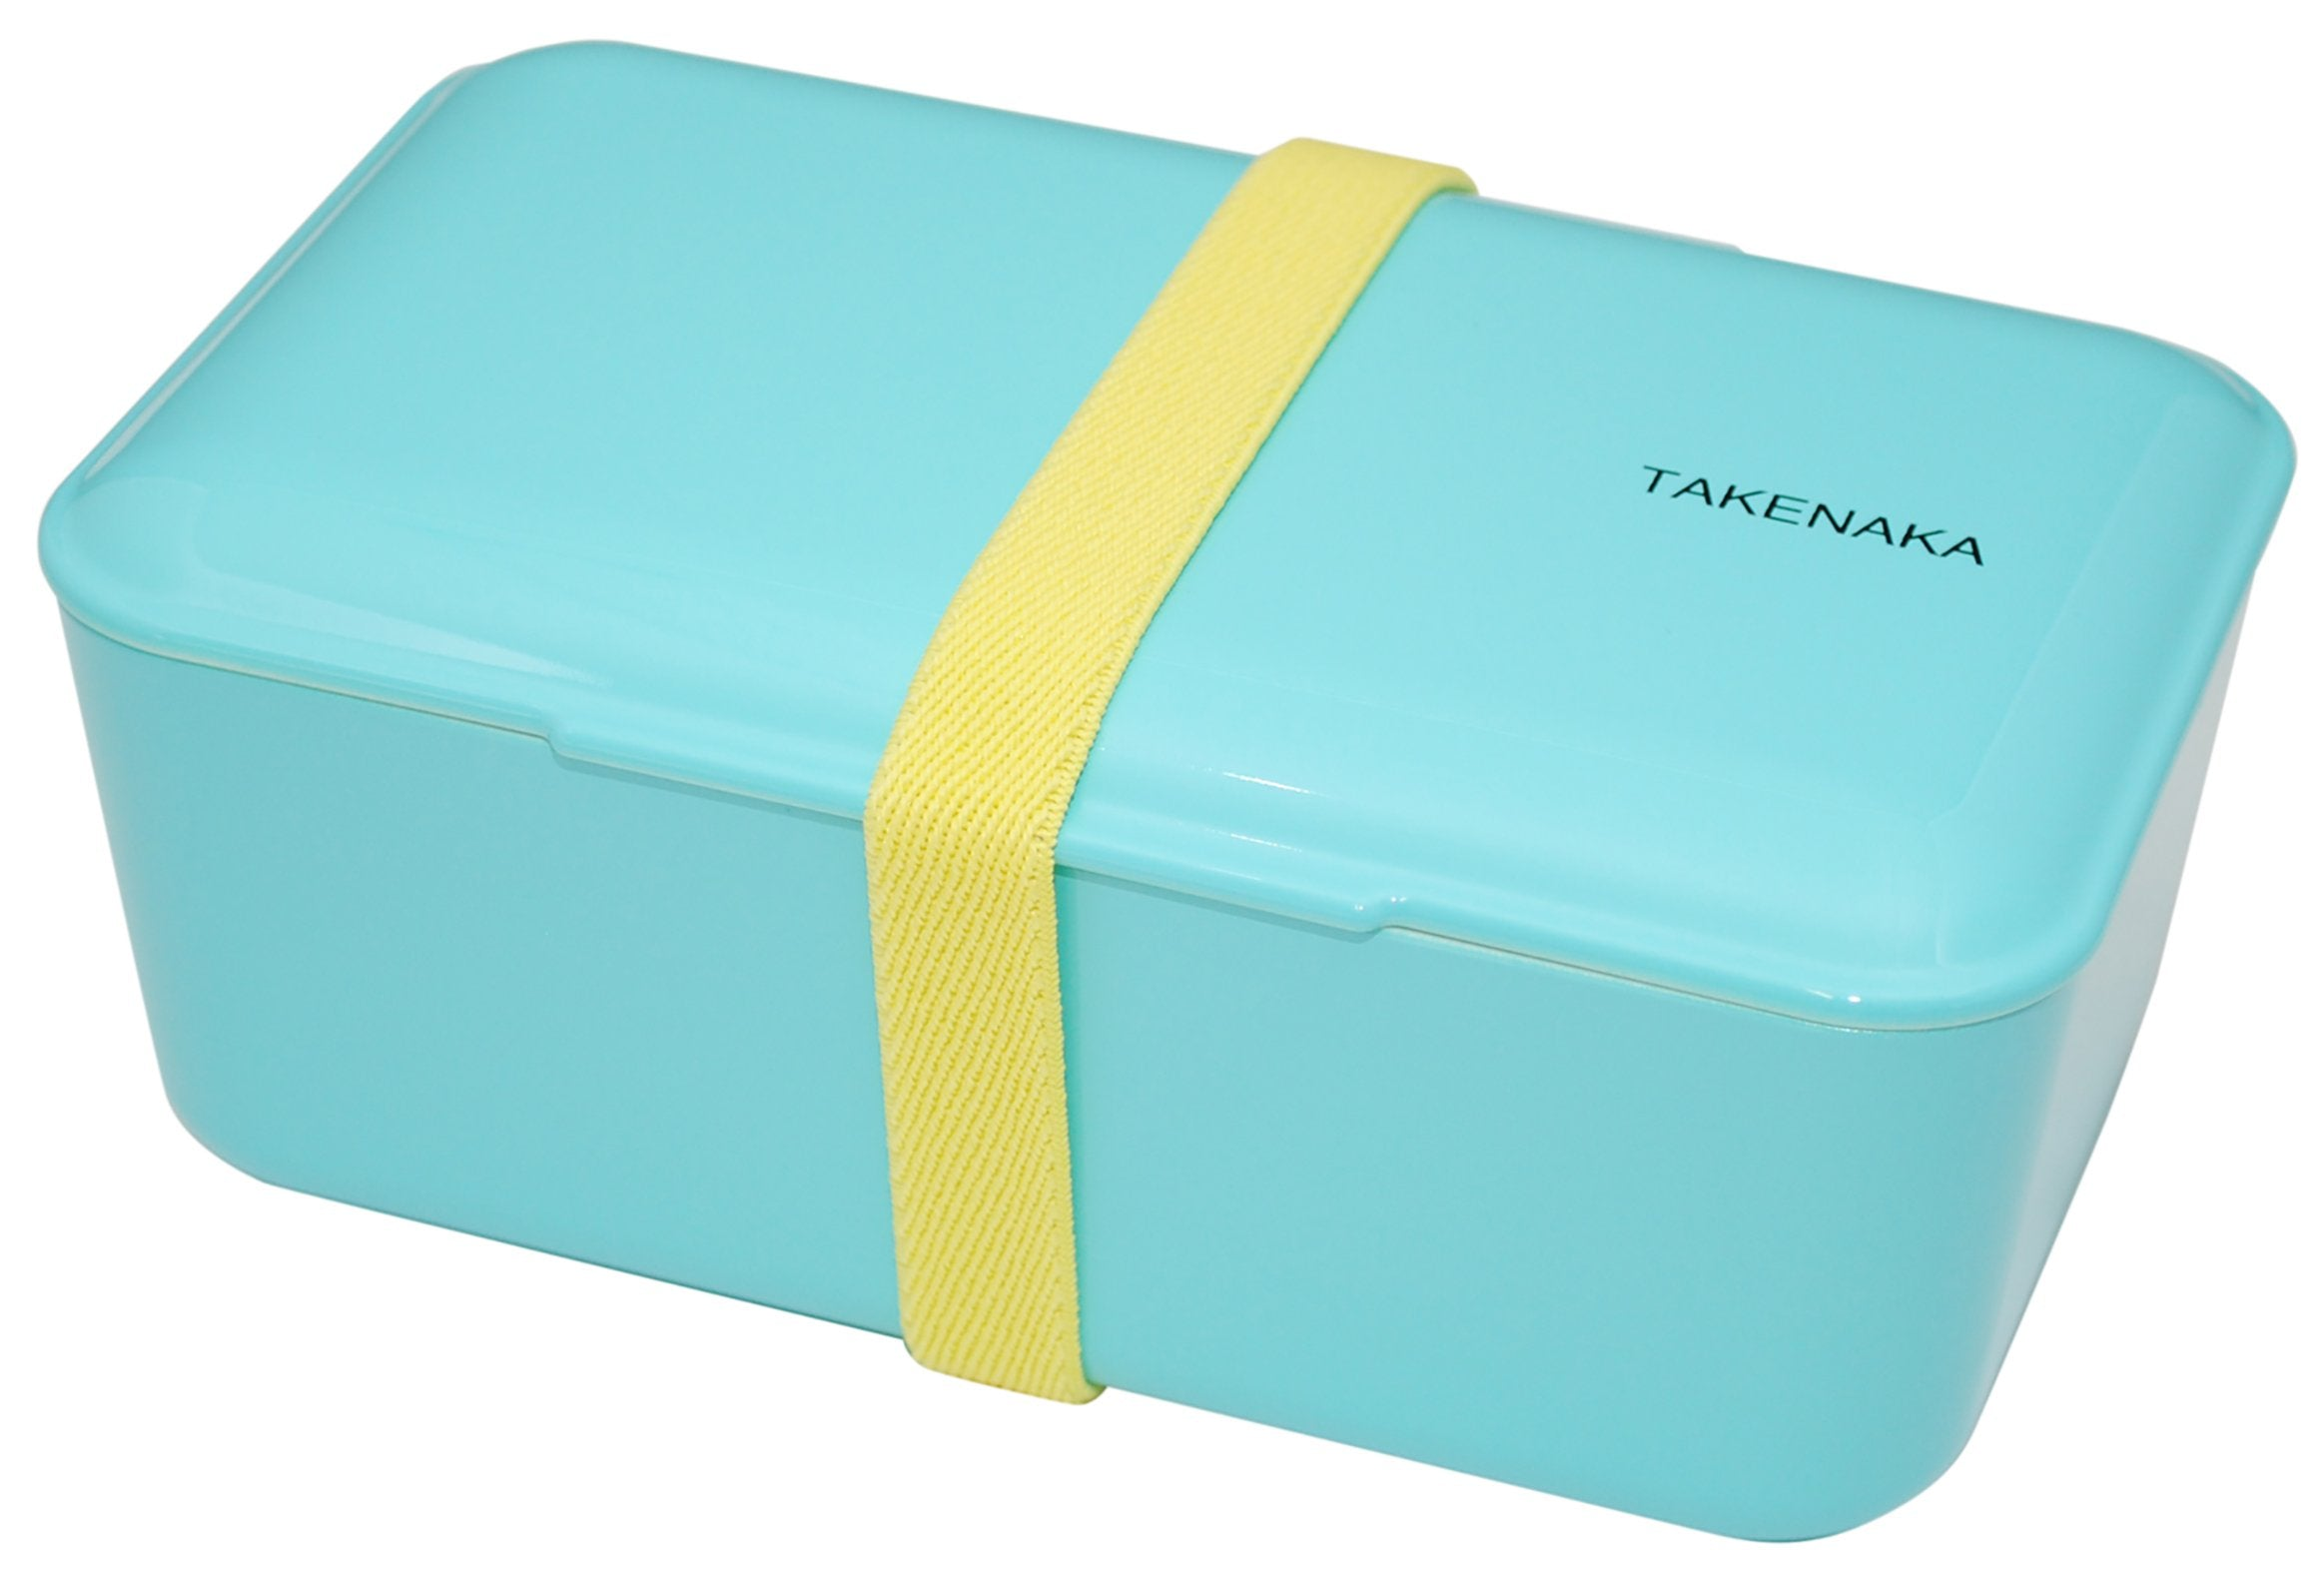 Expanded Bento Box | Light Blue by Takenaka - Bento&co Japanese Bento Lunch Boxes and Kitchenware Specialists